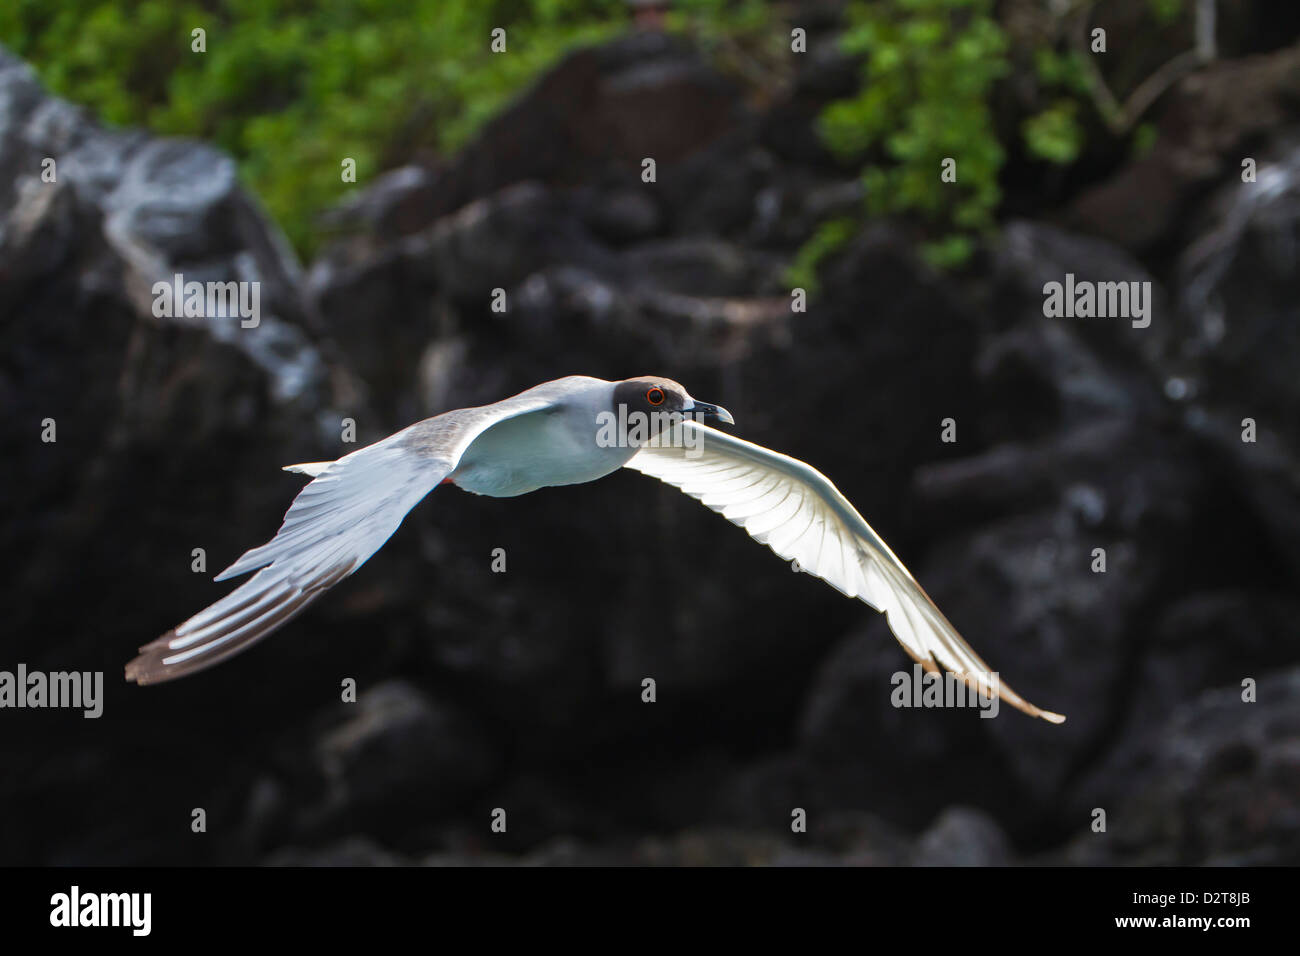 Adult swallow-tailed gull (Creagrus furcatus), Genovesa Island, Galapagos Islands, Ecuador, South America - Stock Image